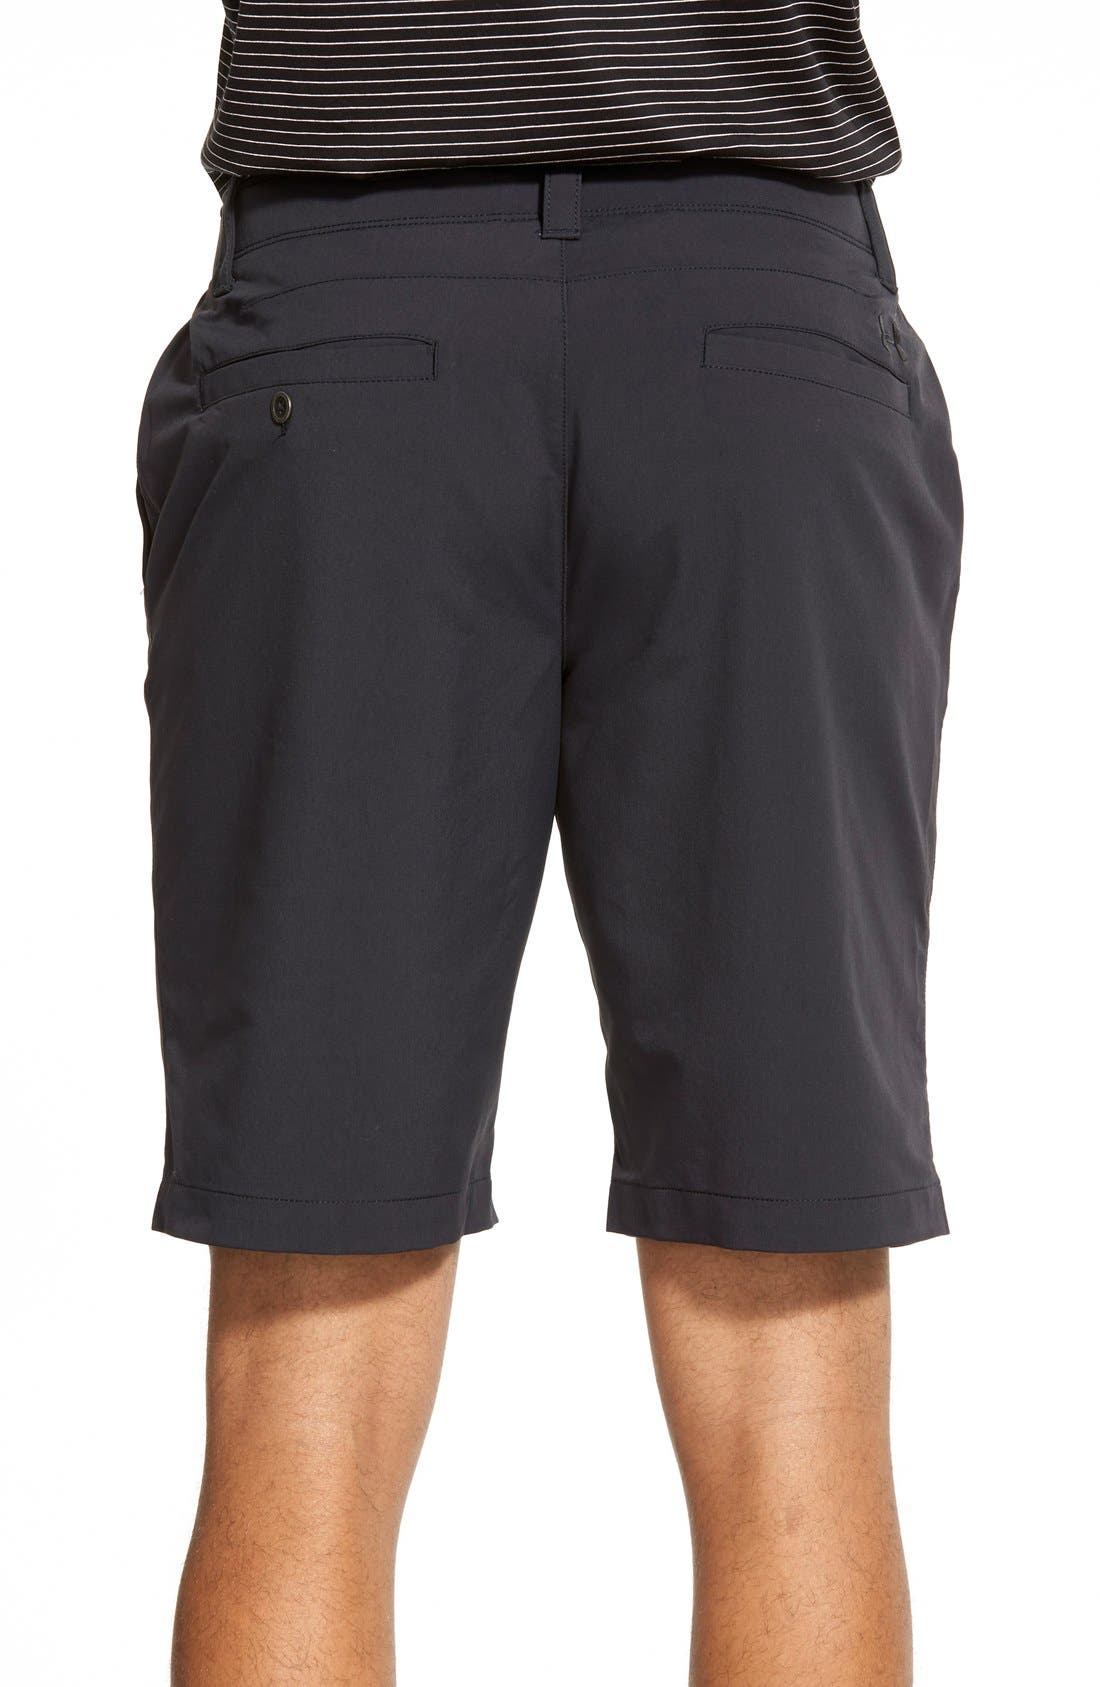 'Matchplay' Moisture Wicking Golf Shorts,                             Alternate thumbnail 9, color,